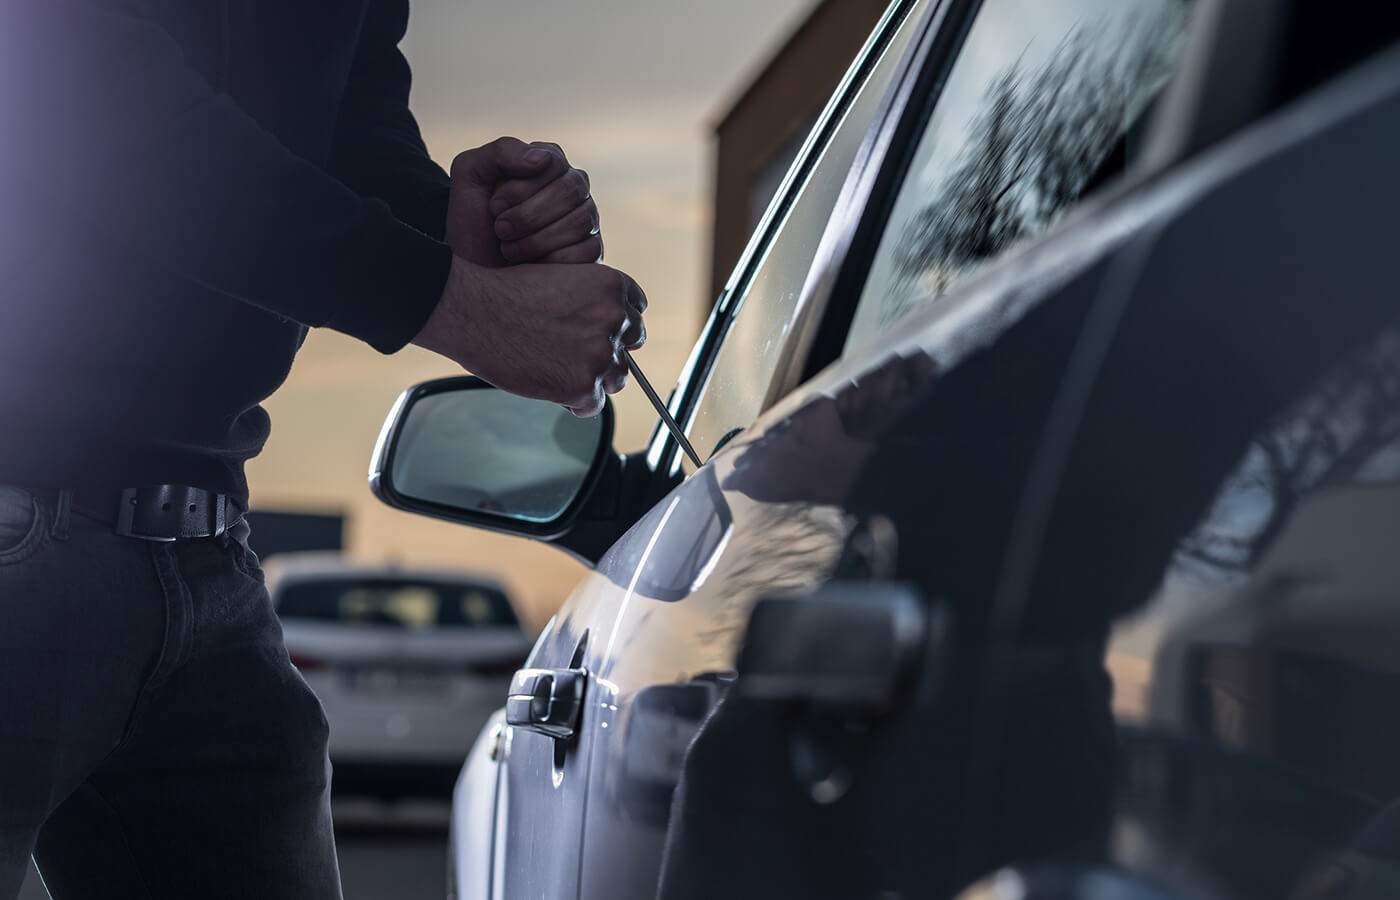 How Stolen Information from Your Car Can Lead to ID Theft